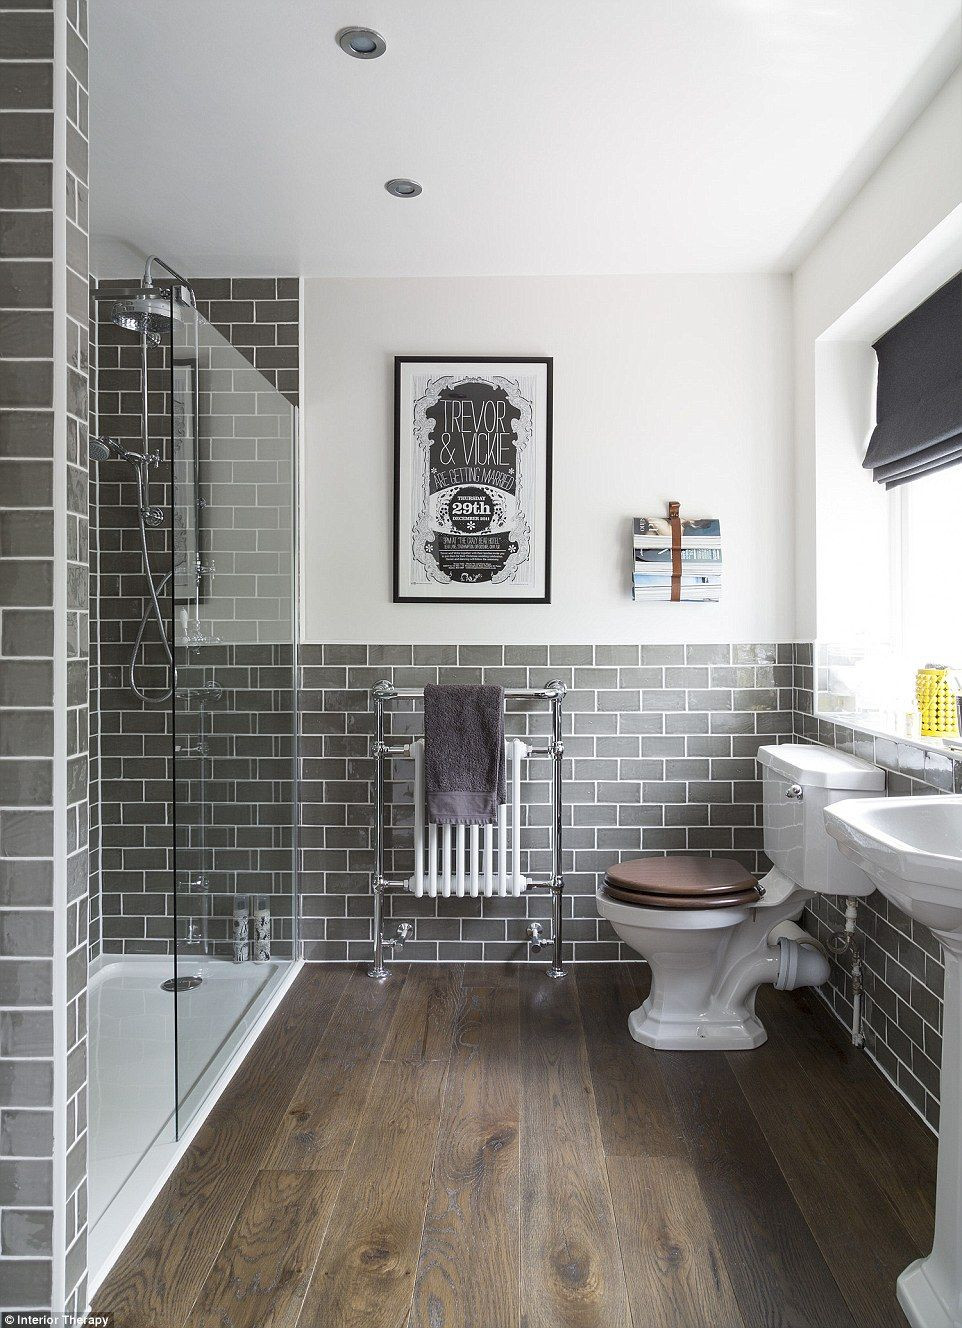 most popular hardwood floor colors of britains most coveted interiors are revealed amazing loos and for this image of a refurbishment in buckinghamshire posted by interior therapy has been saved more than 91000 times by houzz users